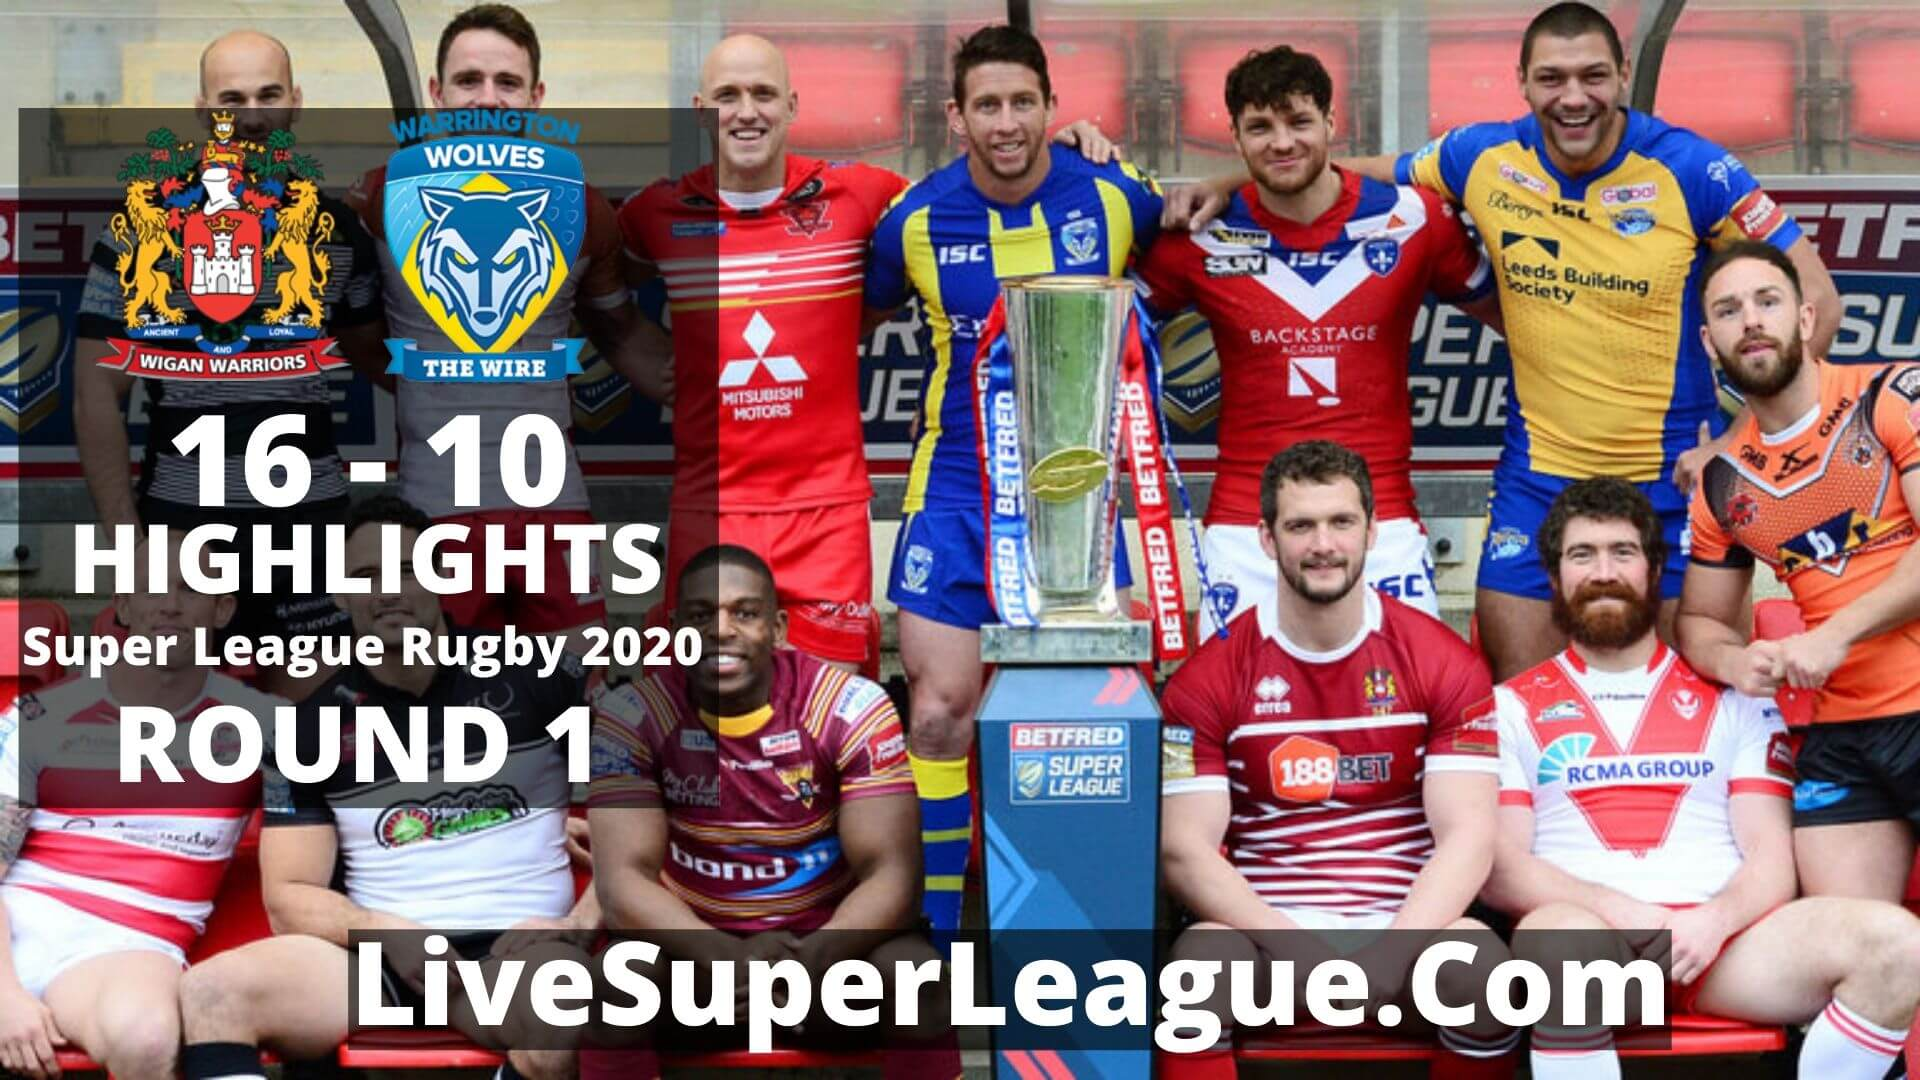 Wigan vs Warrington Highlights 2020 Round 1